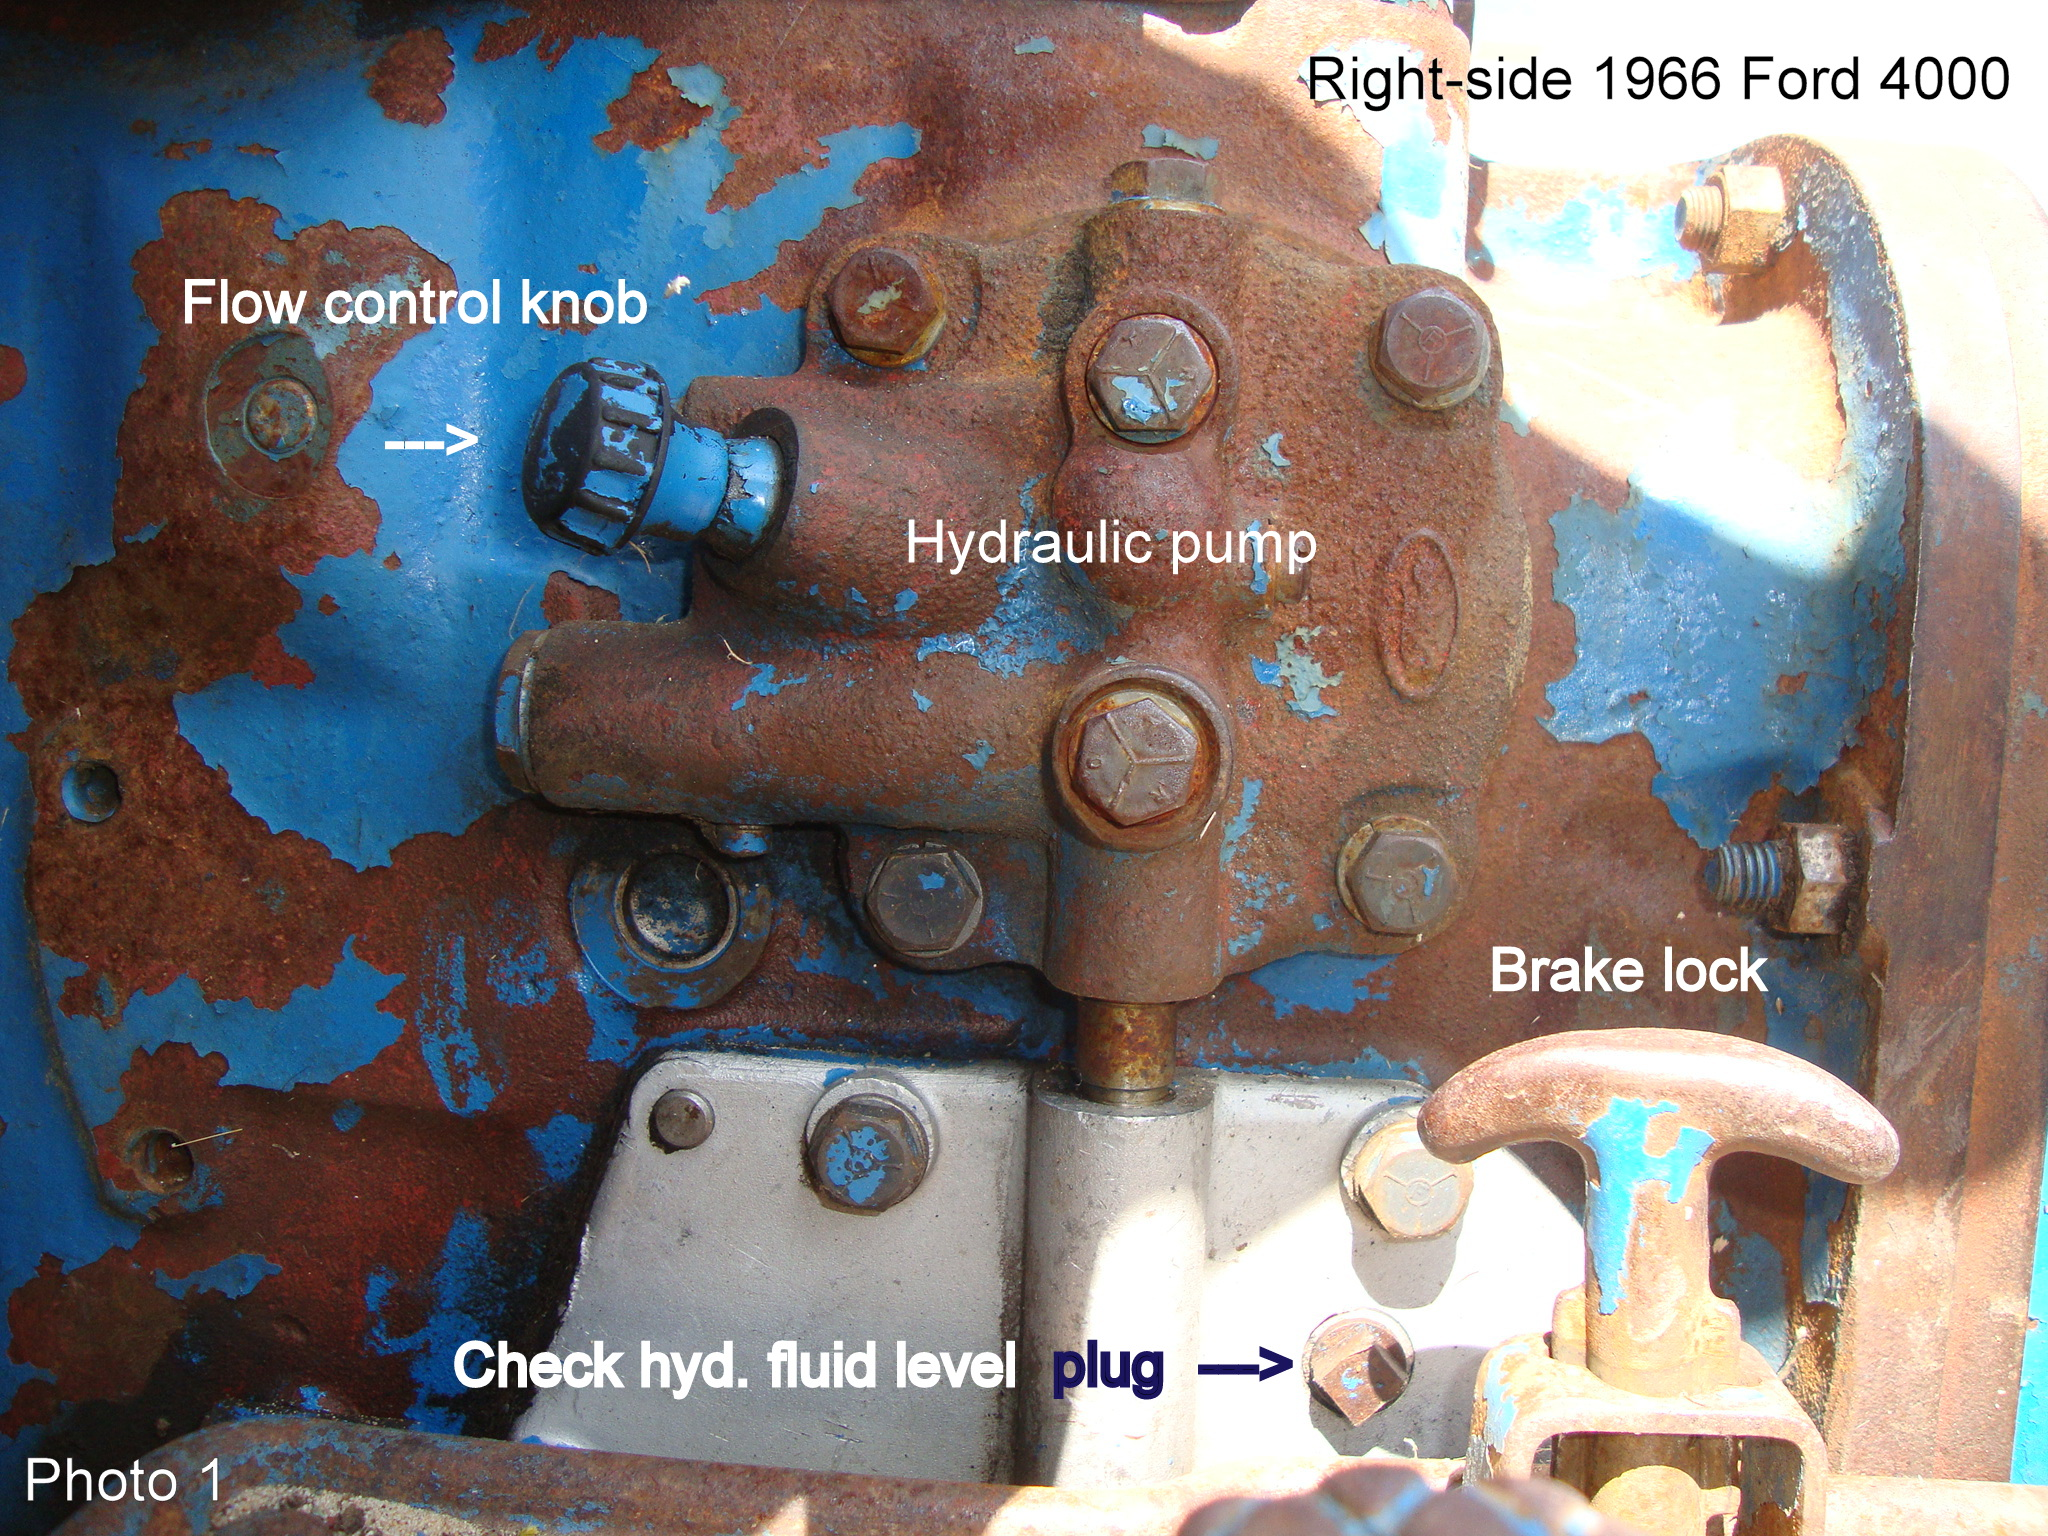 Need Help With Servicing 1966 Ford 4000 Hydraulic System